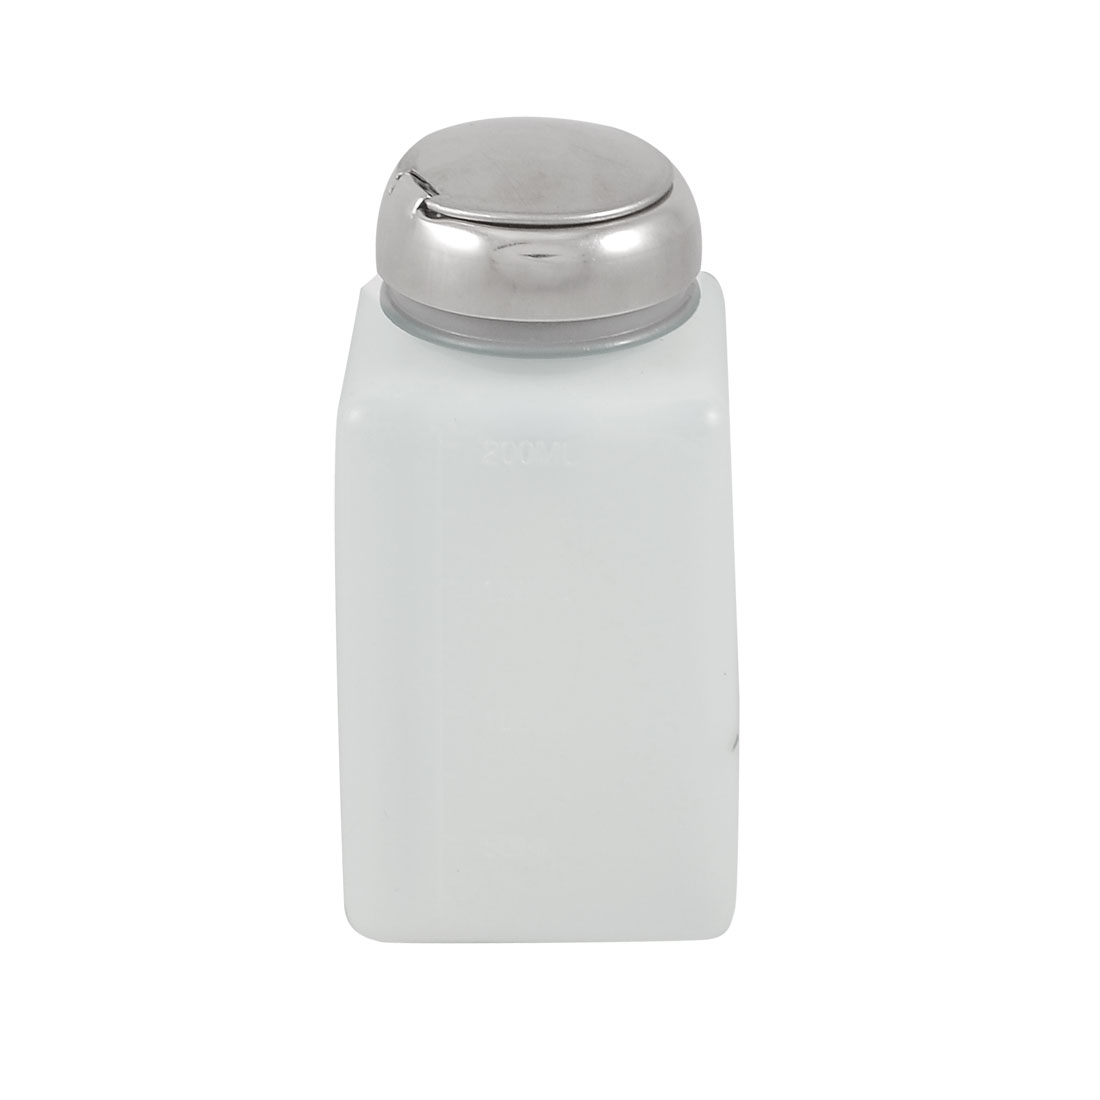 Silver Tone Pump Cap White Plastic Graduated Alcohol Bottle 200ml